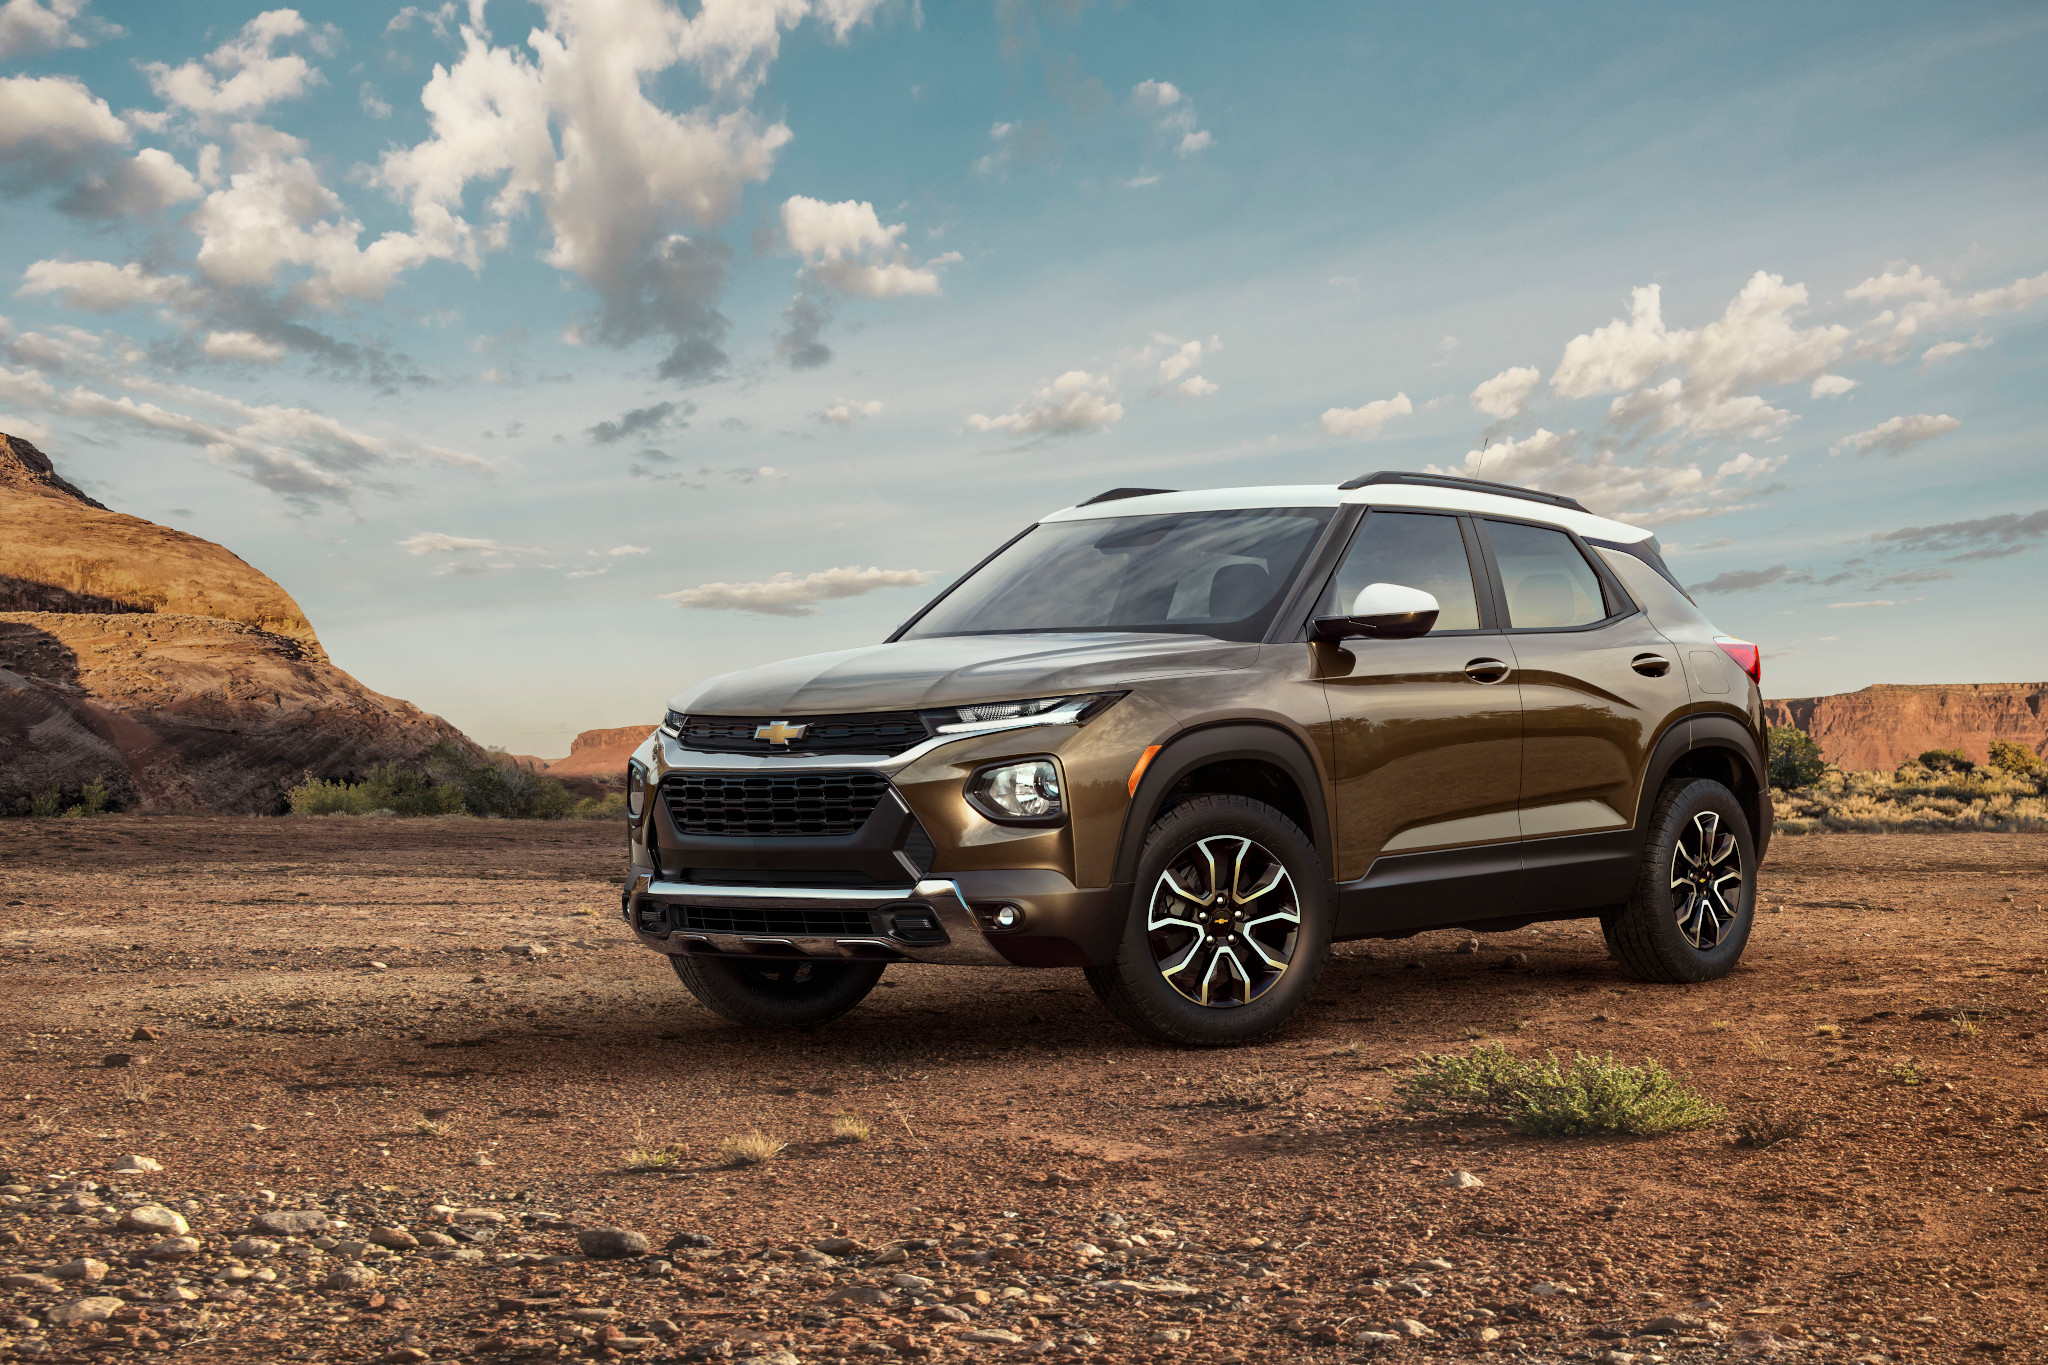 2021 Chevrolet Trailblazer: Suv Carries Torch For Past 2021 Chevy Equinox Transmission Problems, Turbo, Tires